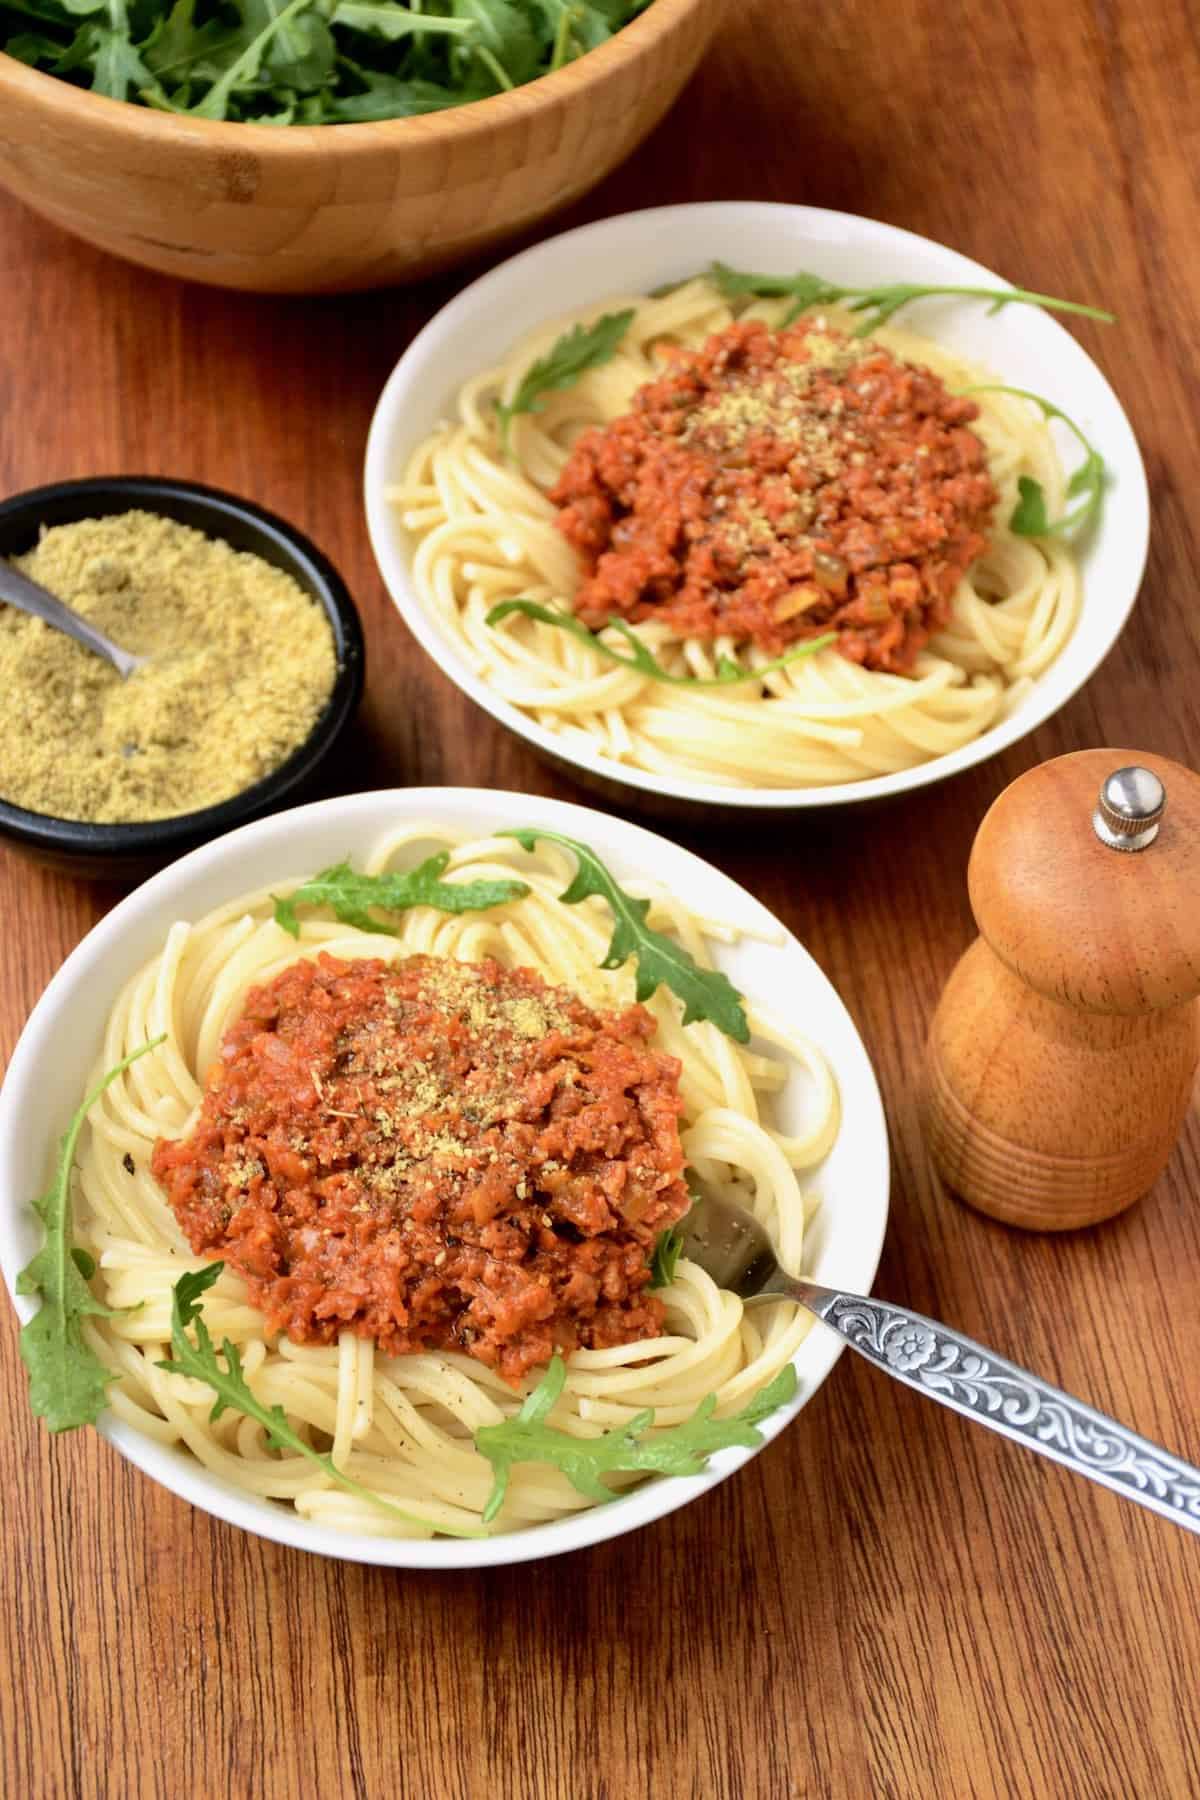 Two potions of pasta with bolognese sauce, a pepper mill and a small bowl of vegan parmesan substitute.